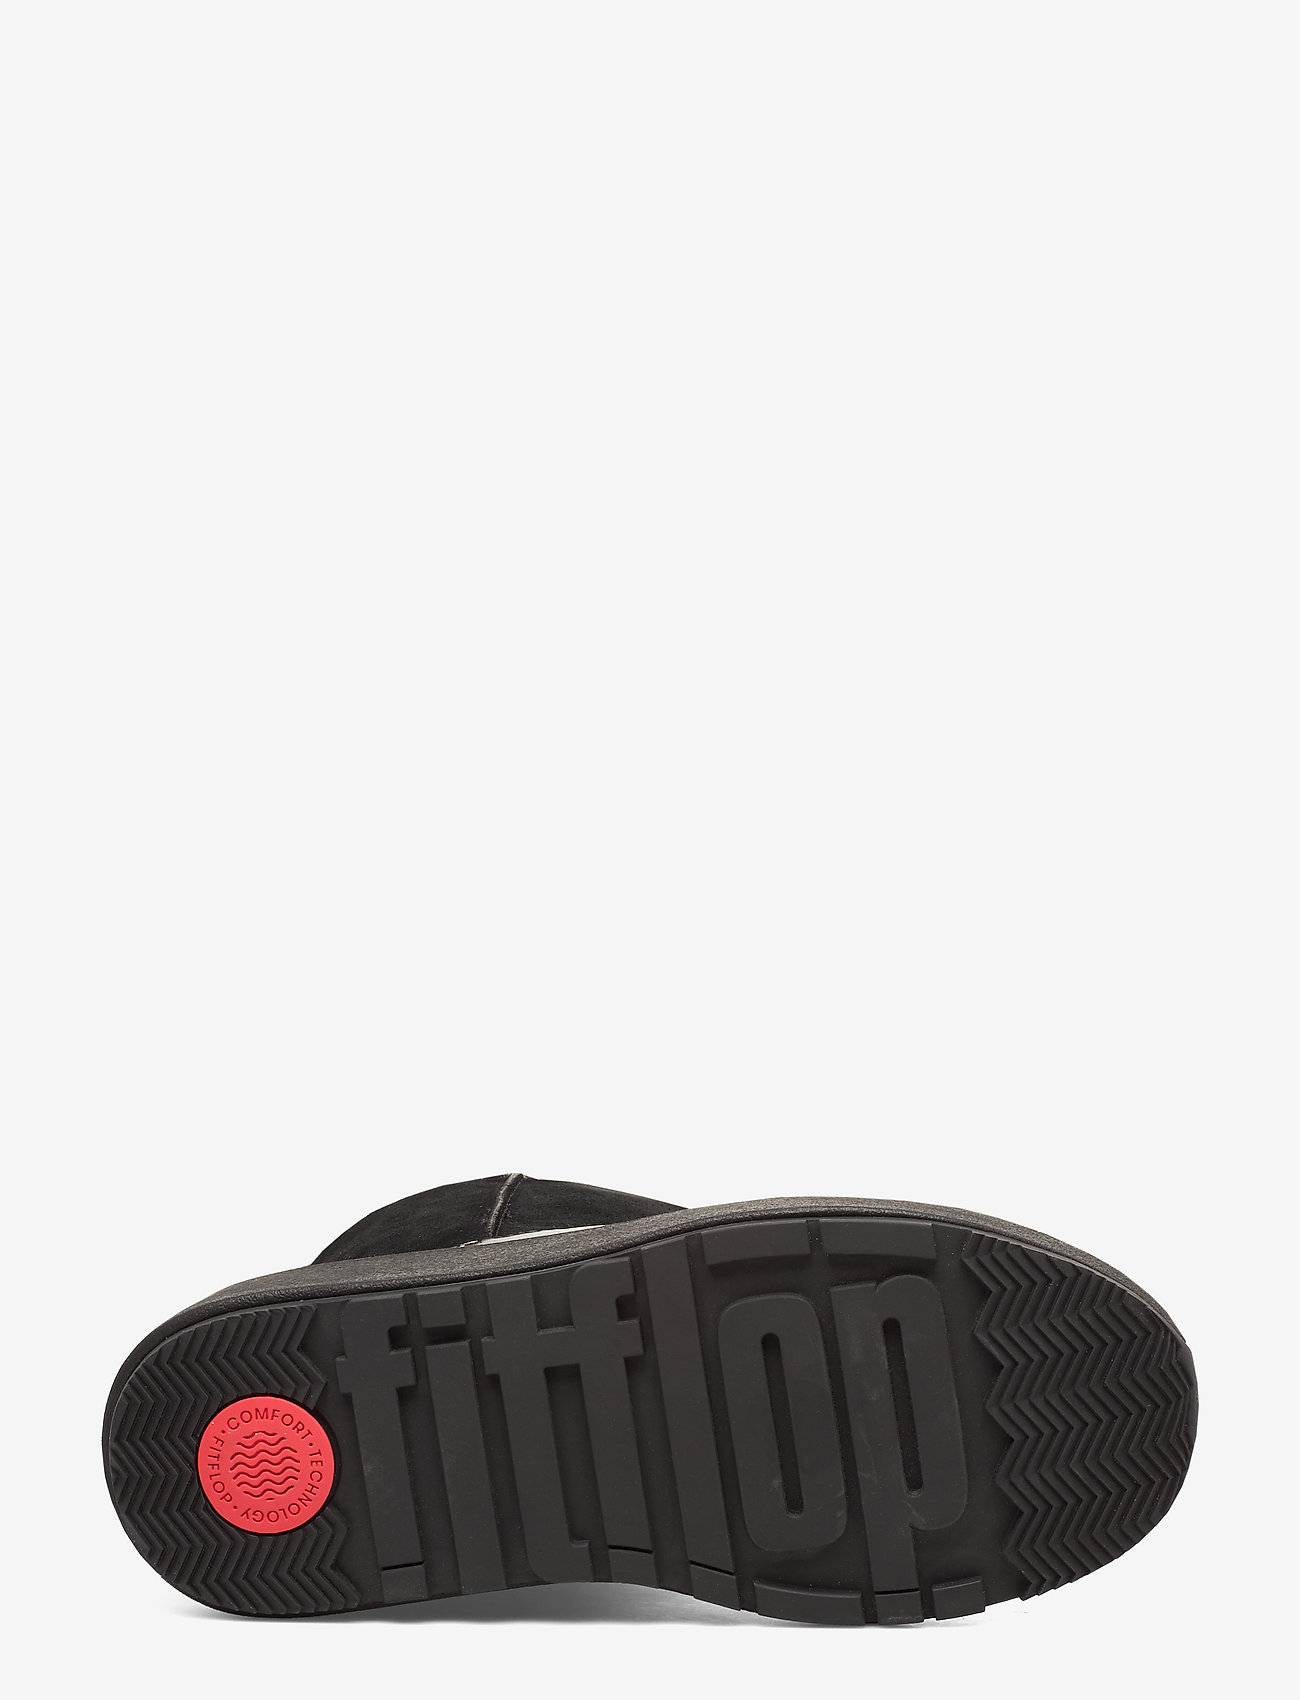 Elin Snuggle Boot (All Black) - FitFlop